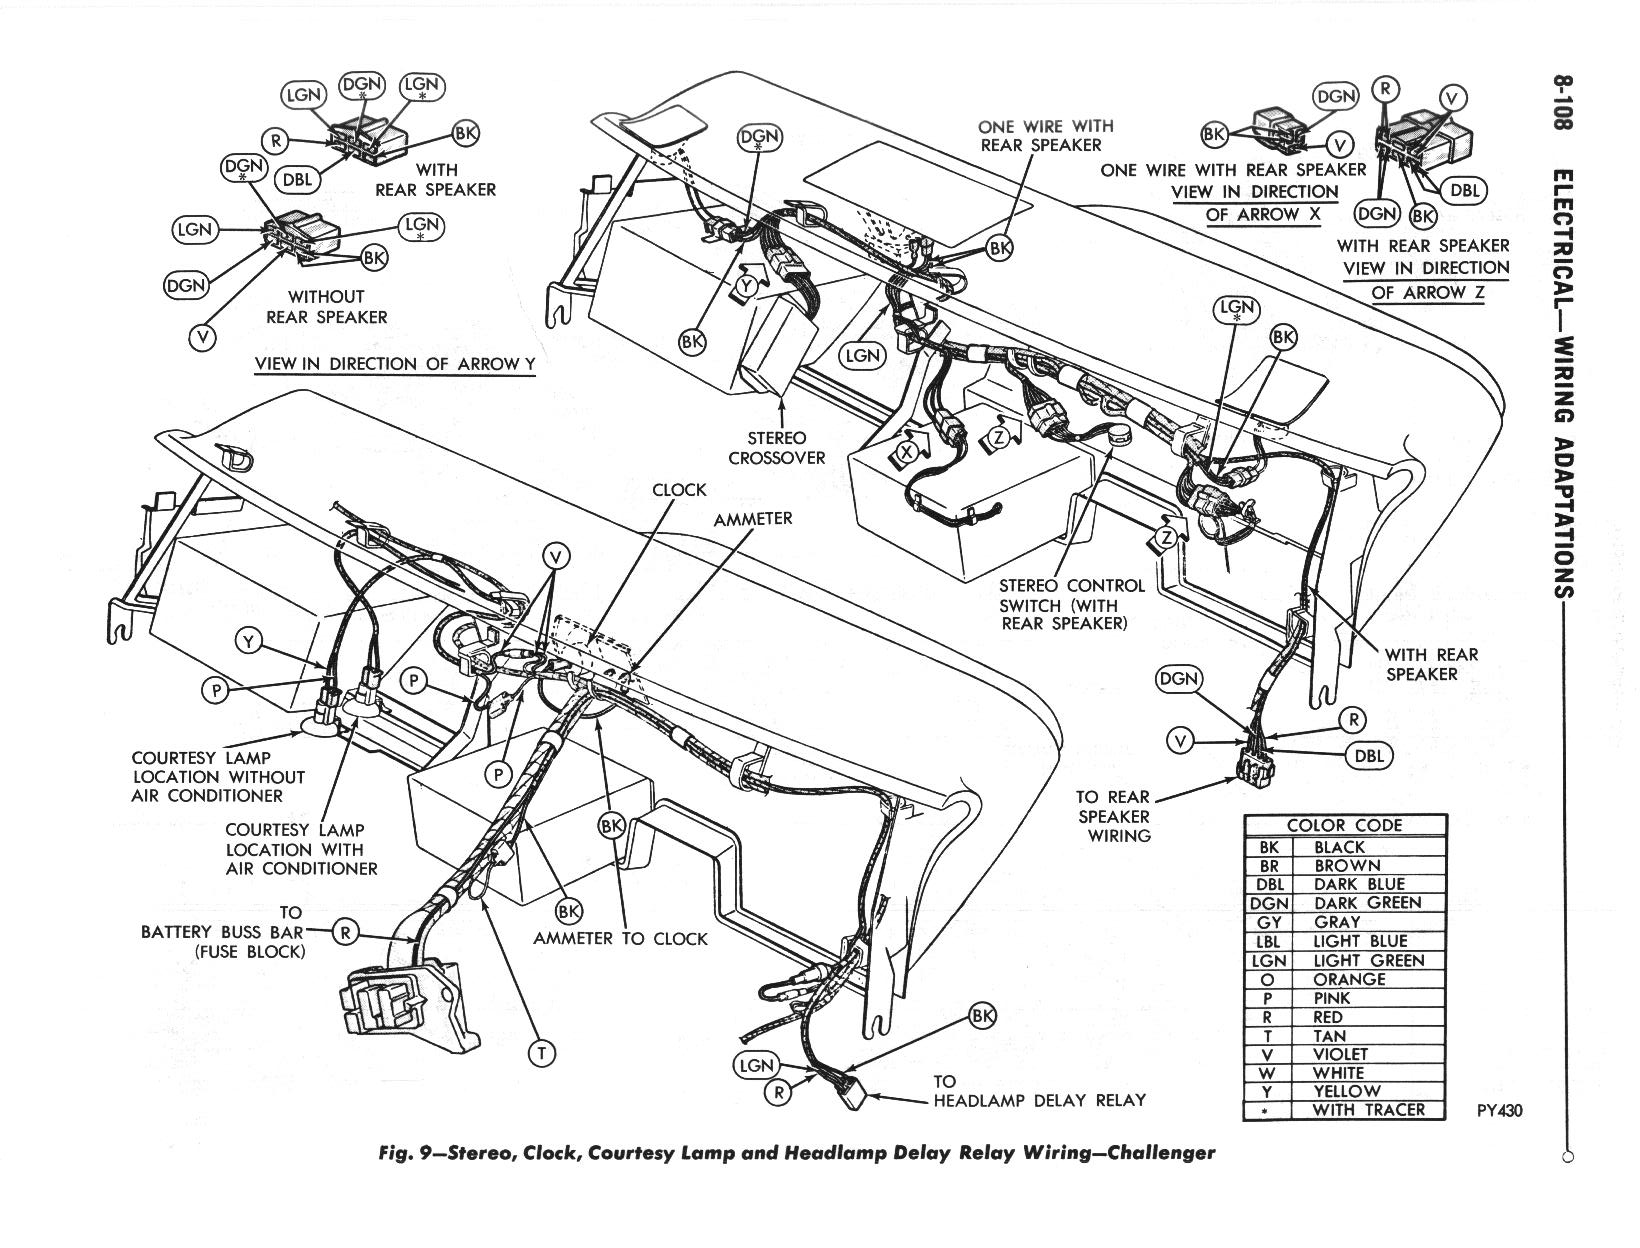 1970 challenger wiring diagrams • the dodge challenger message board grp8 108 jpg